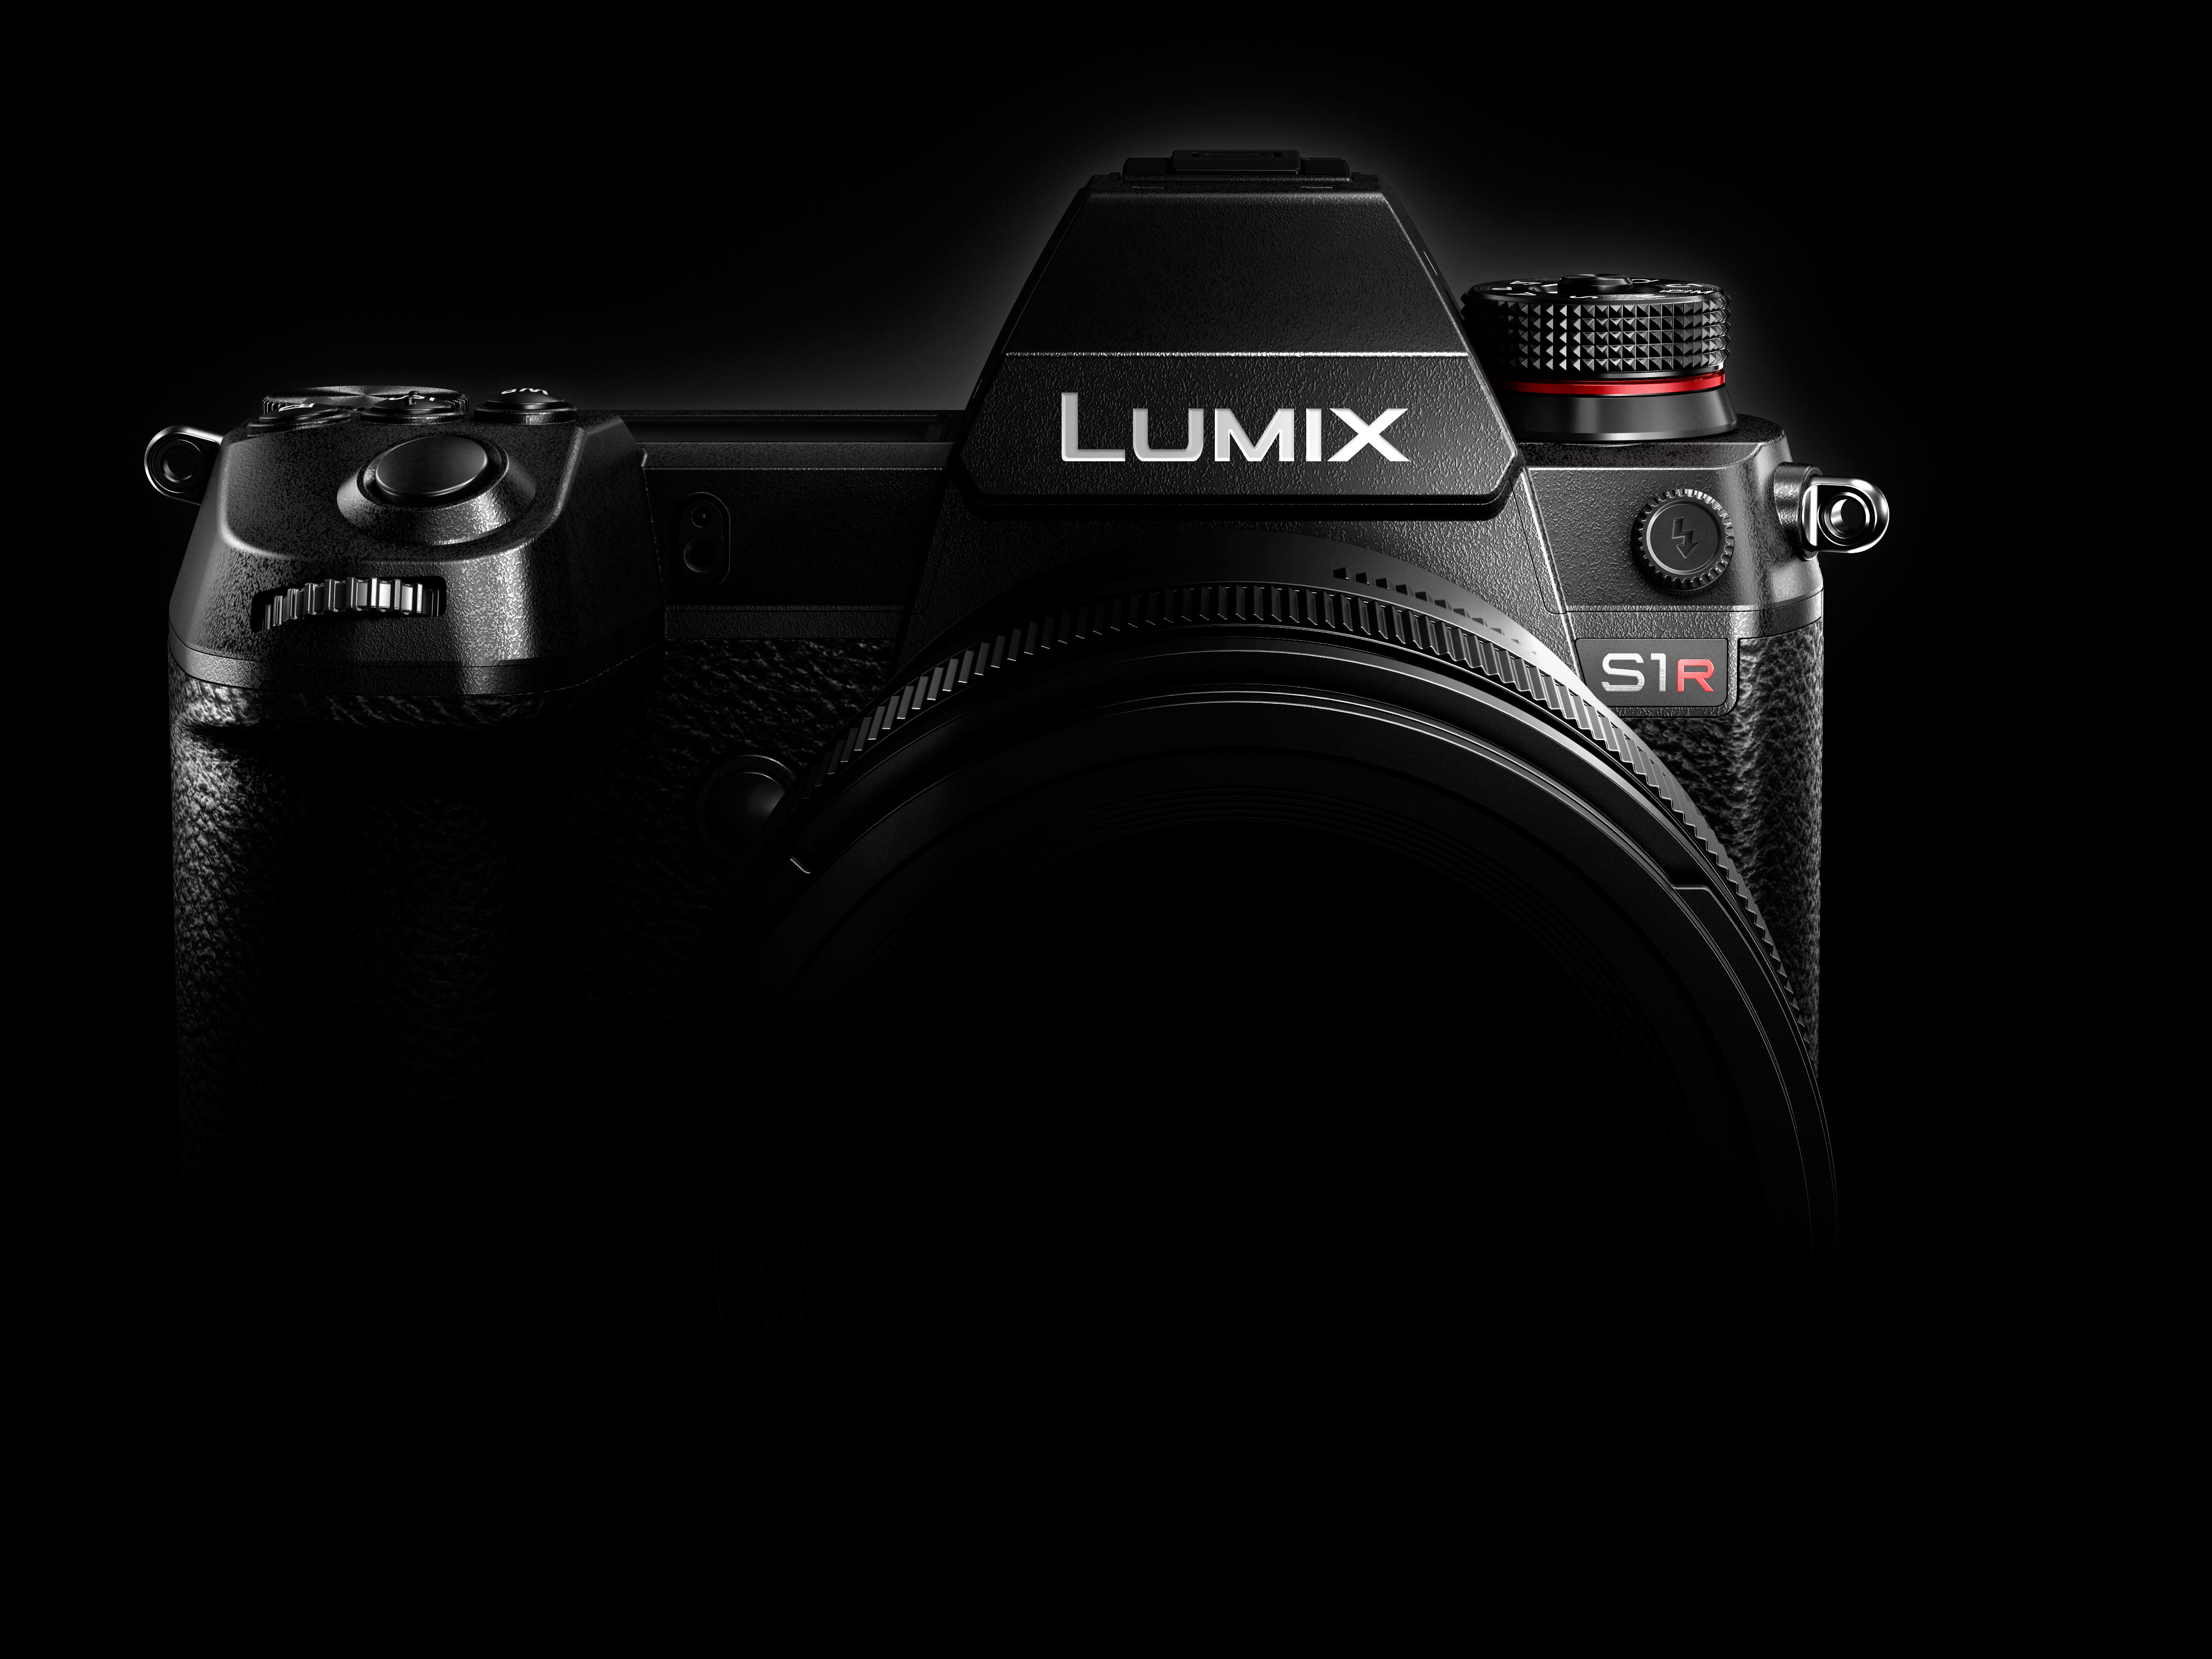 Panasonic developing two full-frame mirrorless cameras with Leica L ...